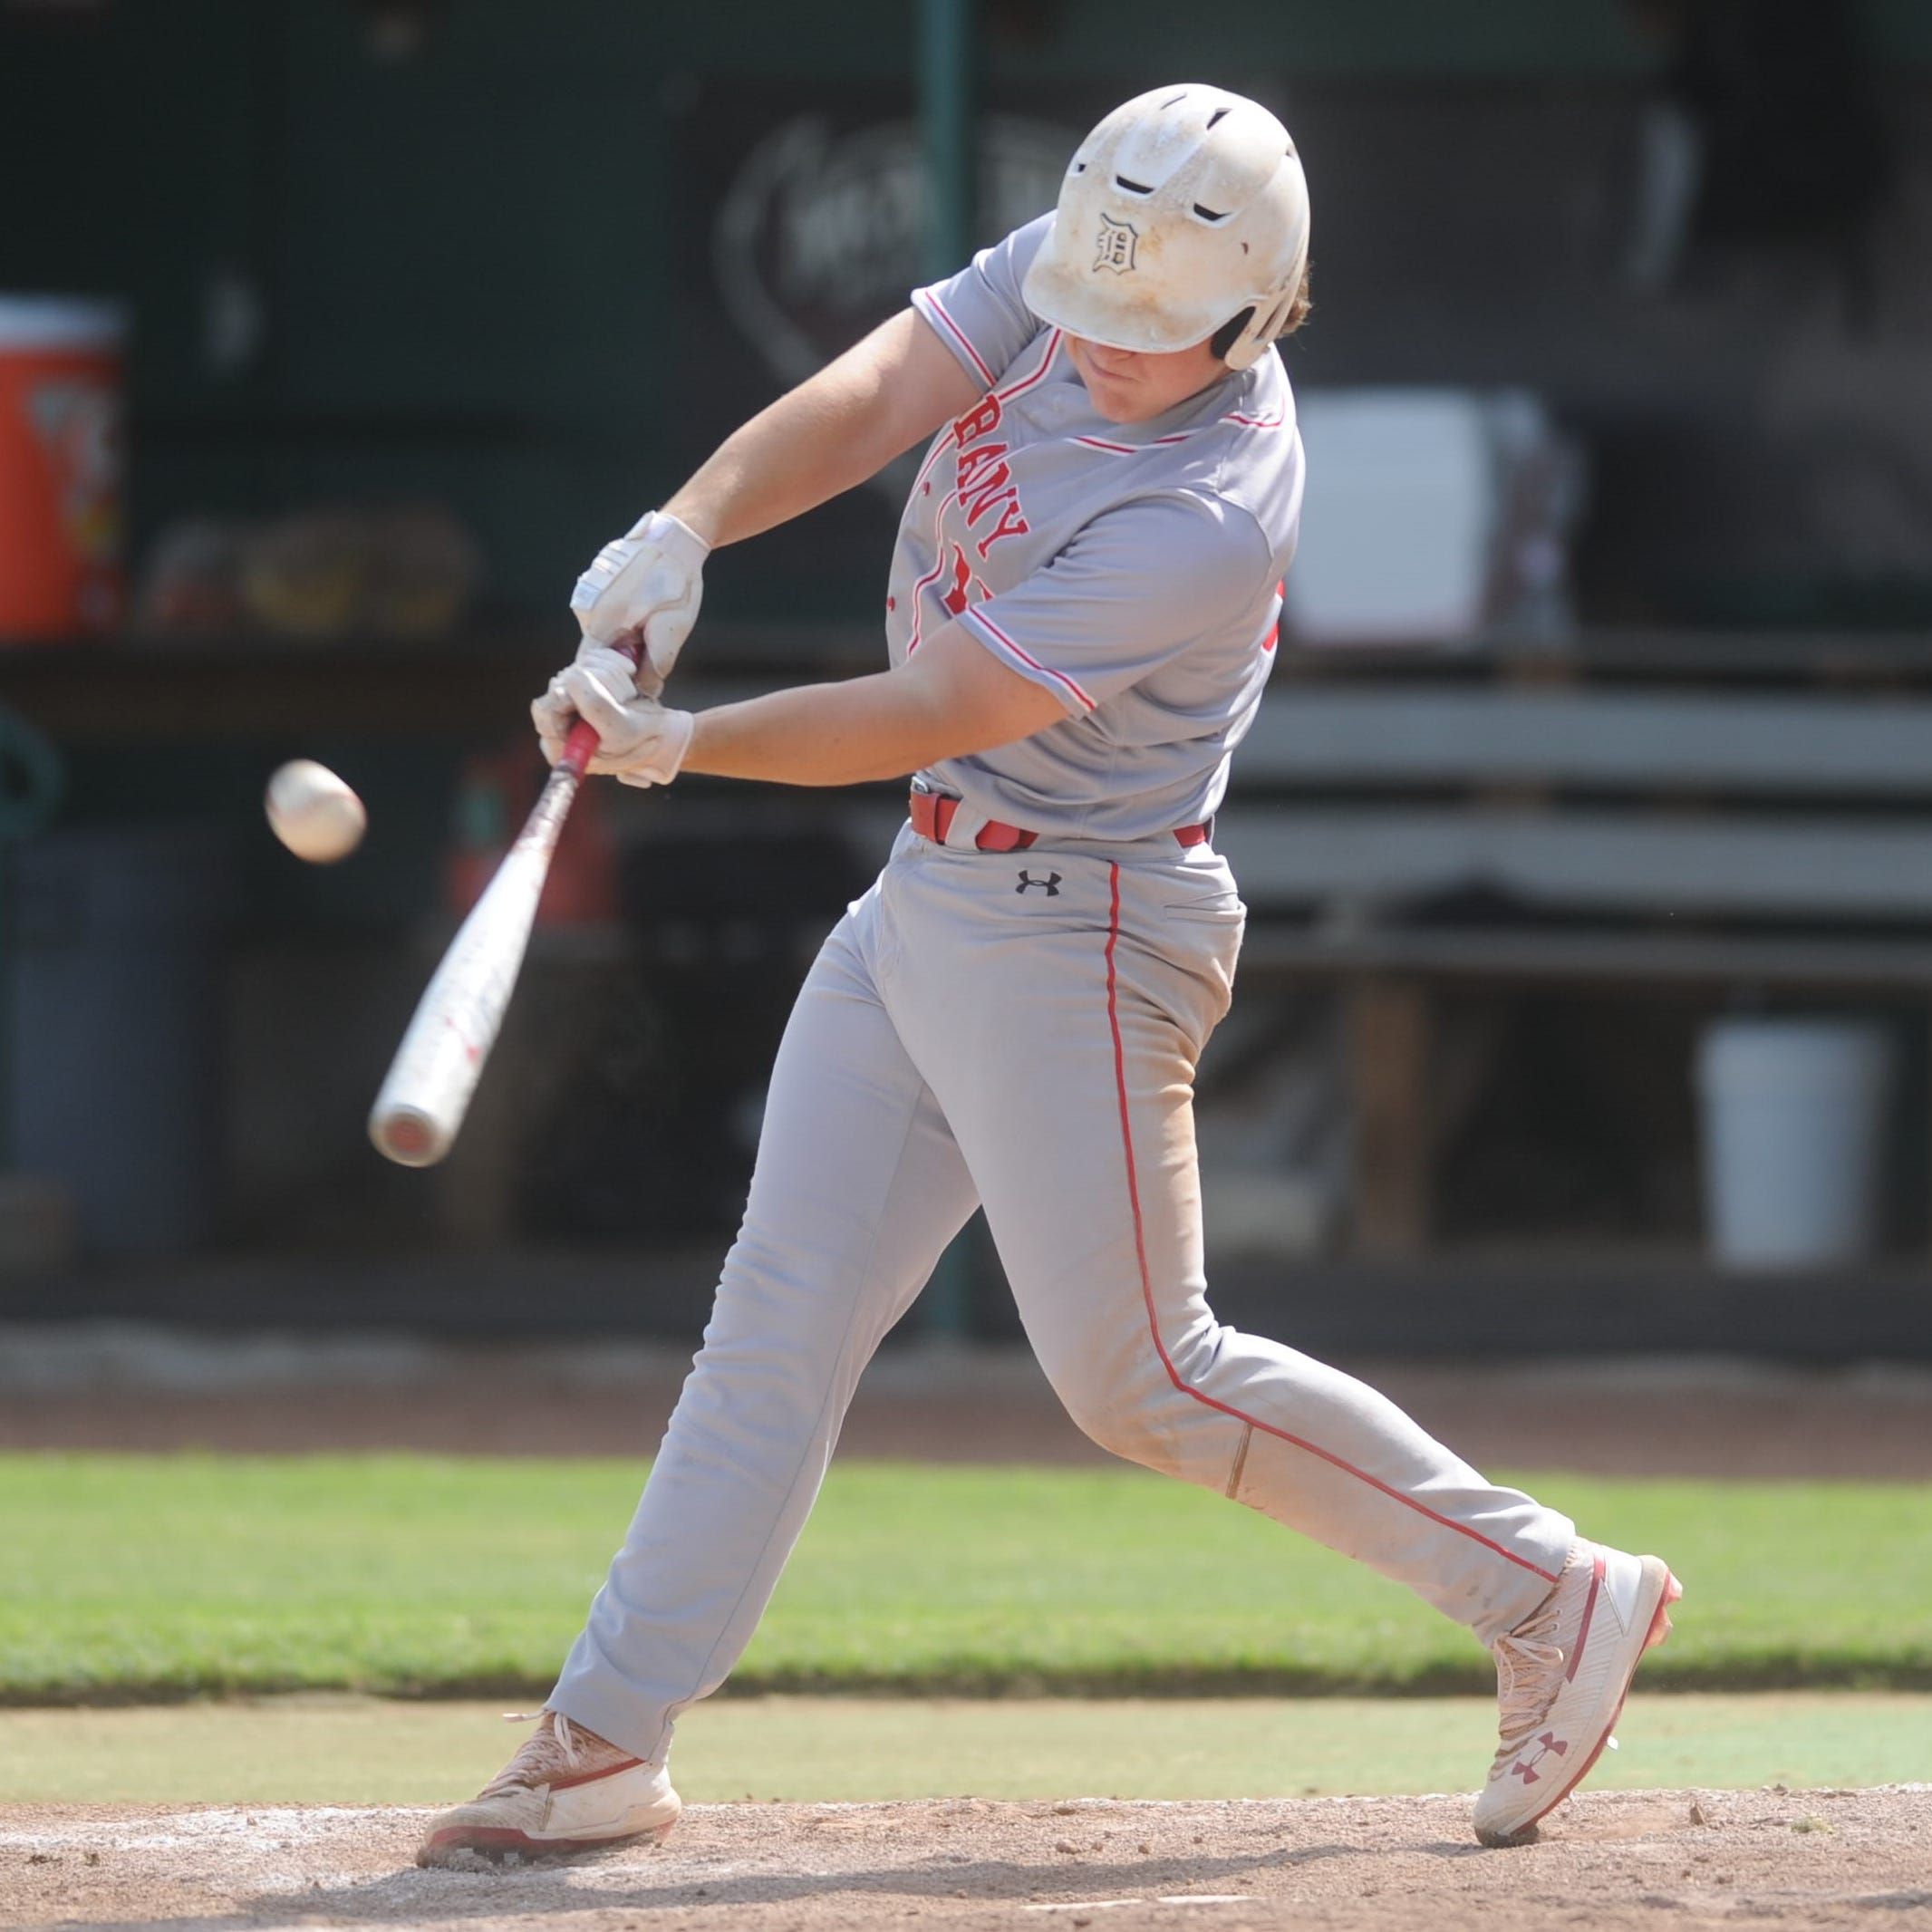 Clutch hitting allows Albany to complete doubleheader sweep of Haskell in region quarters